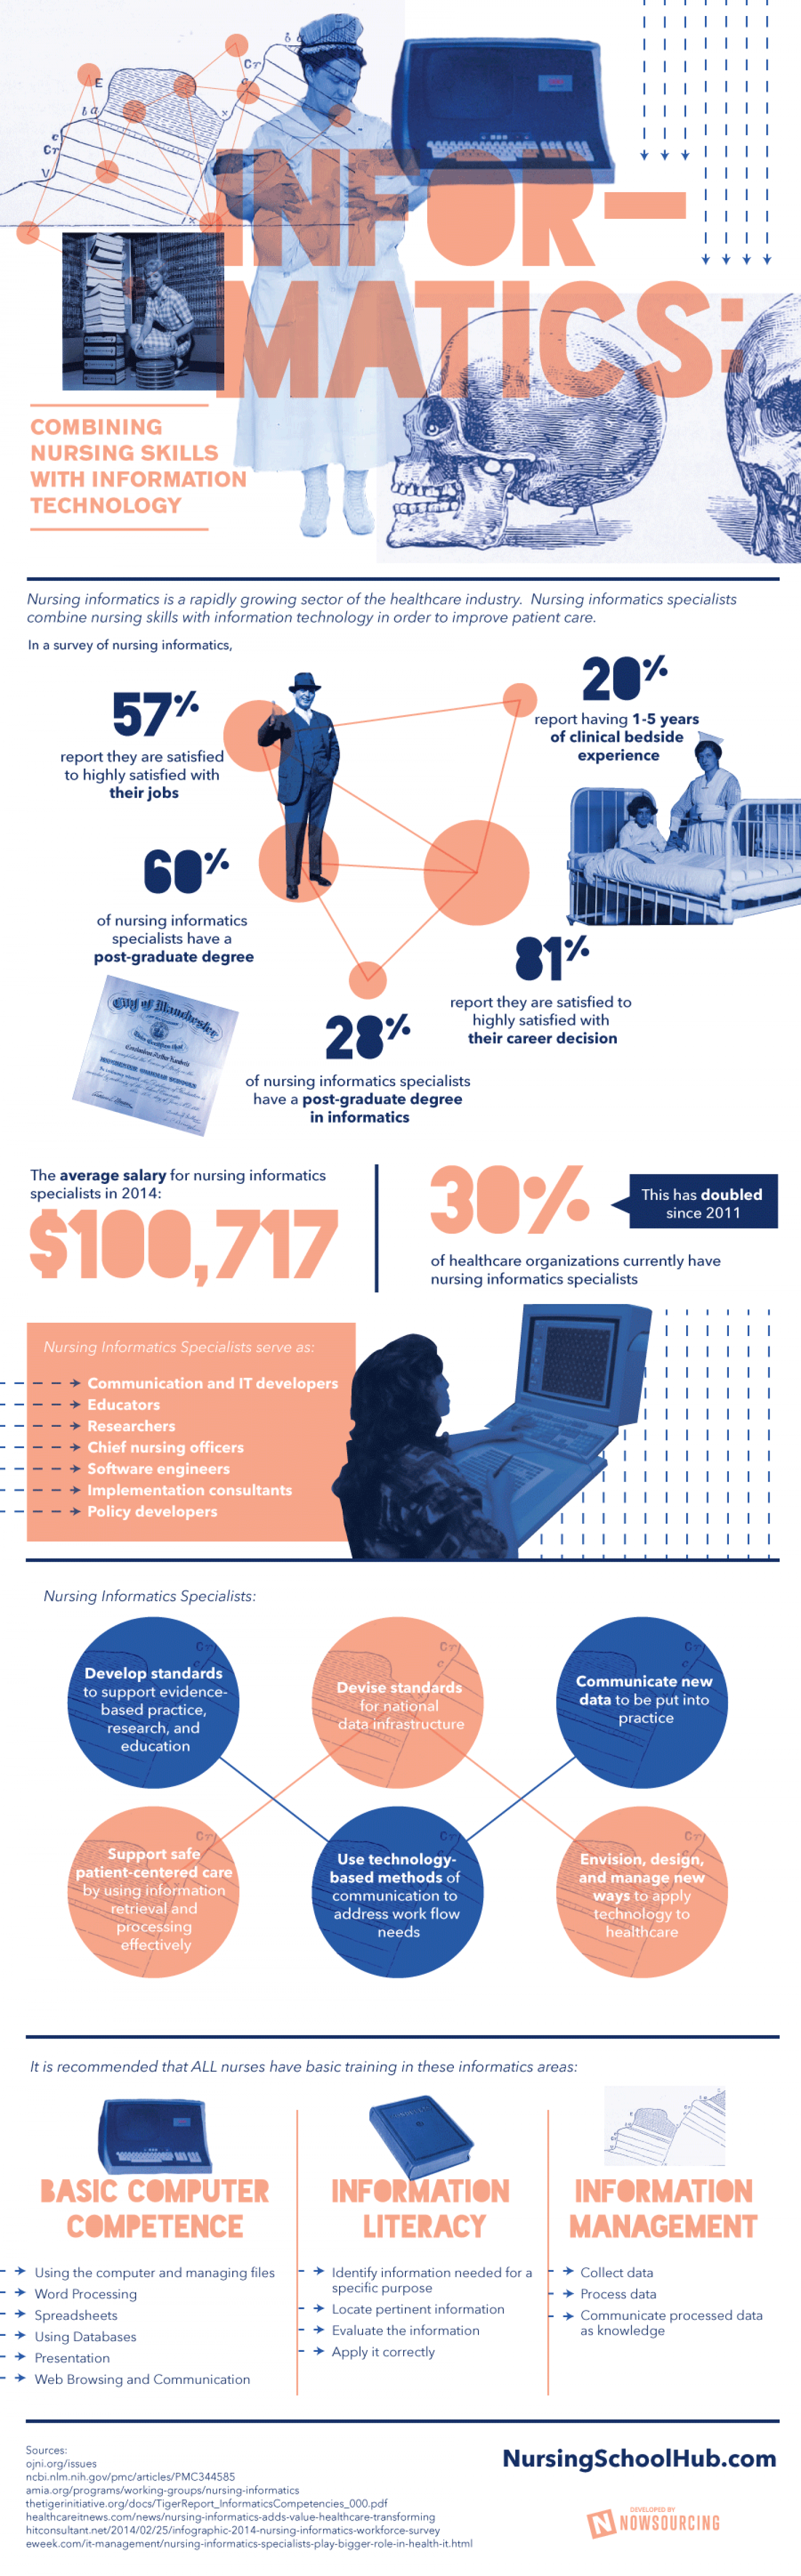 Informatics: Combining Nursing Skills with Information Technology Infographic